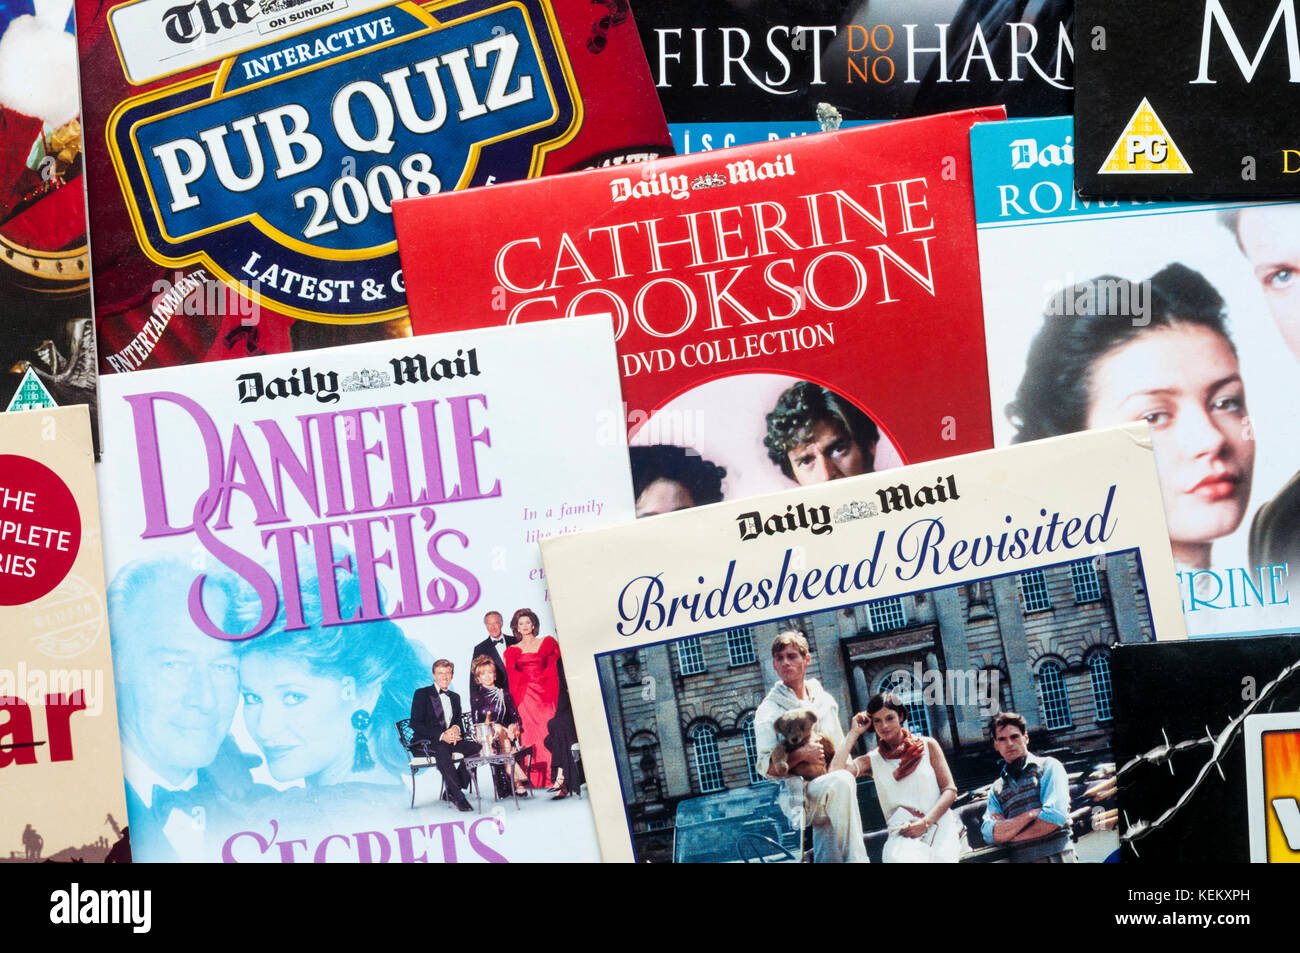 A selection of DVDs given away free with the Daily Mail newspaper. - Stock Image